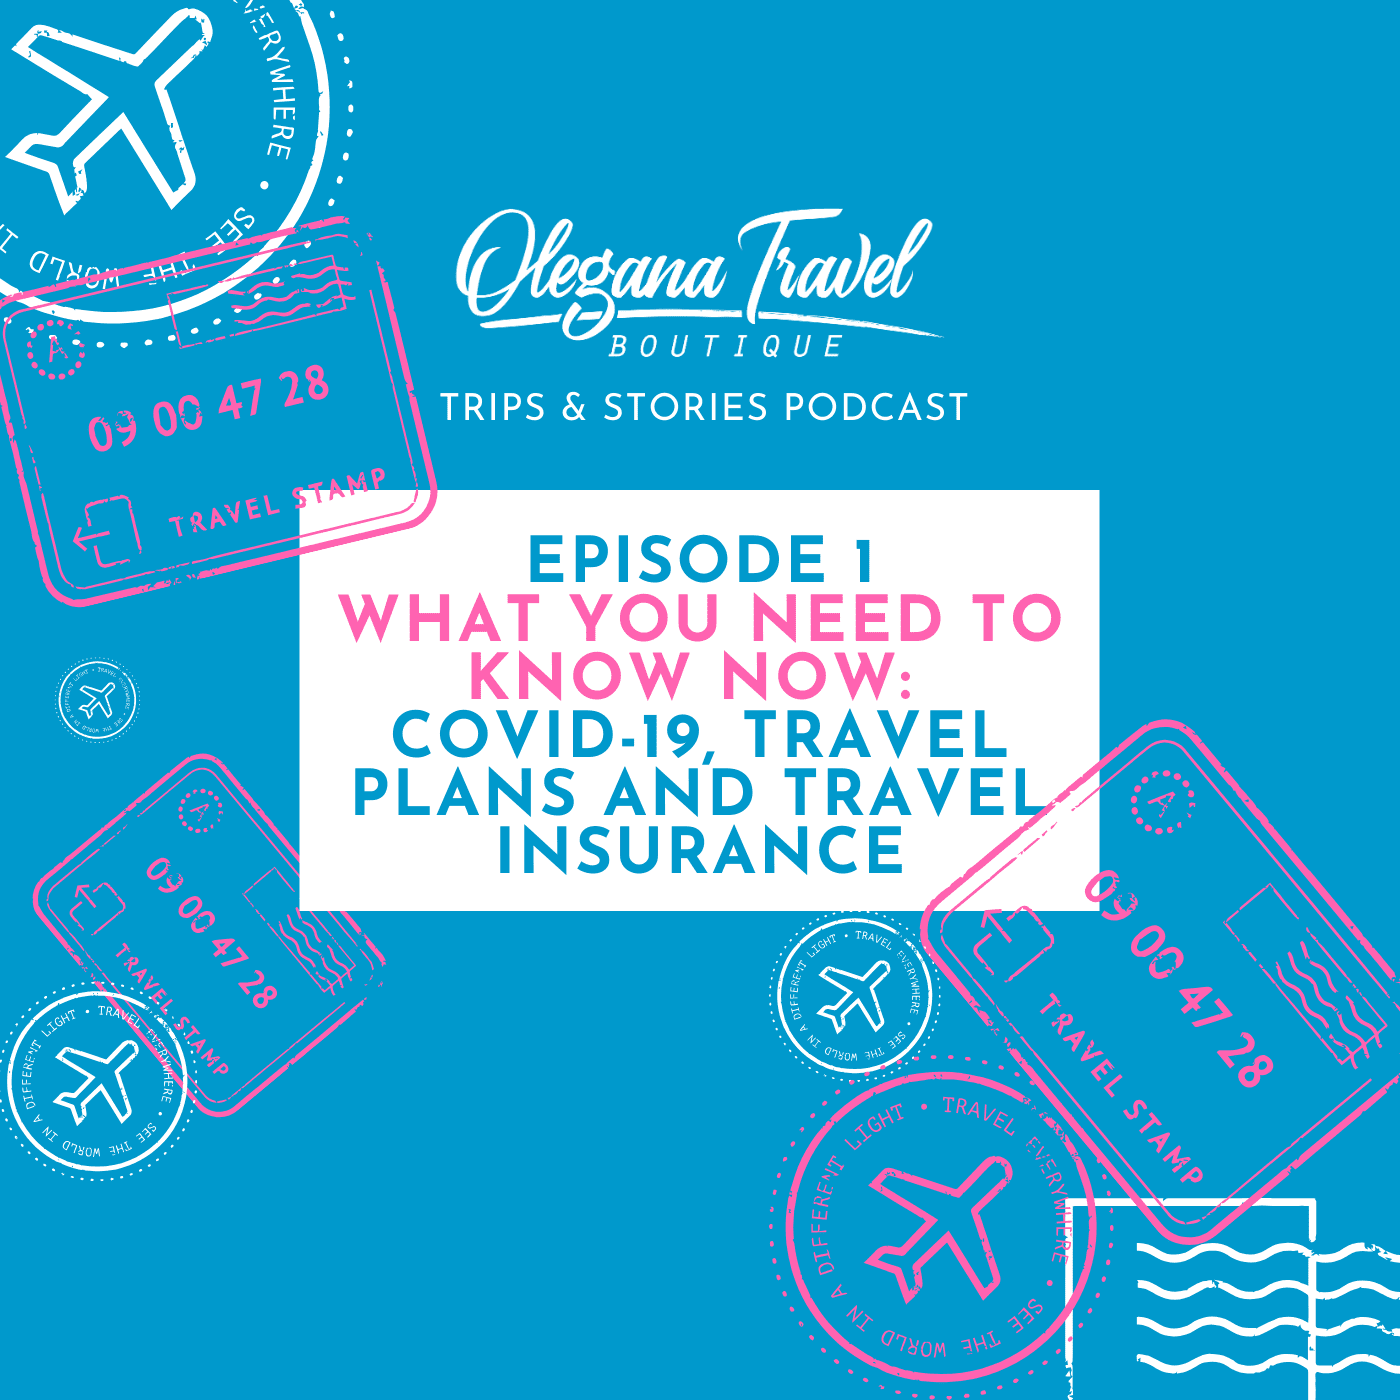 Olegana Travel Boutique Podcast Cover Art - Episode:001 What You Need To Know Now: Coronavirus (COVID19), Travel Plans & Travel Insurance